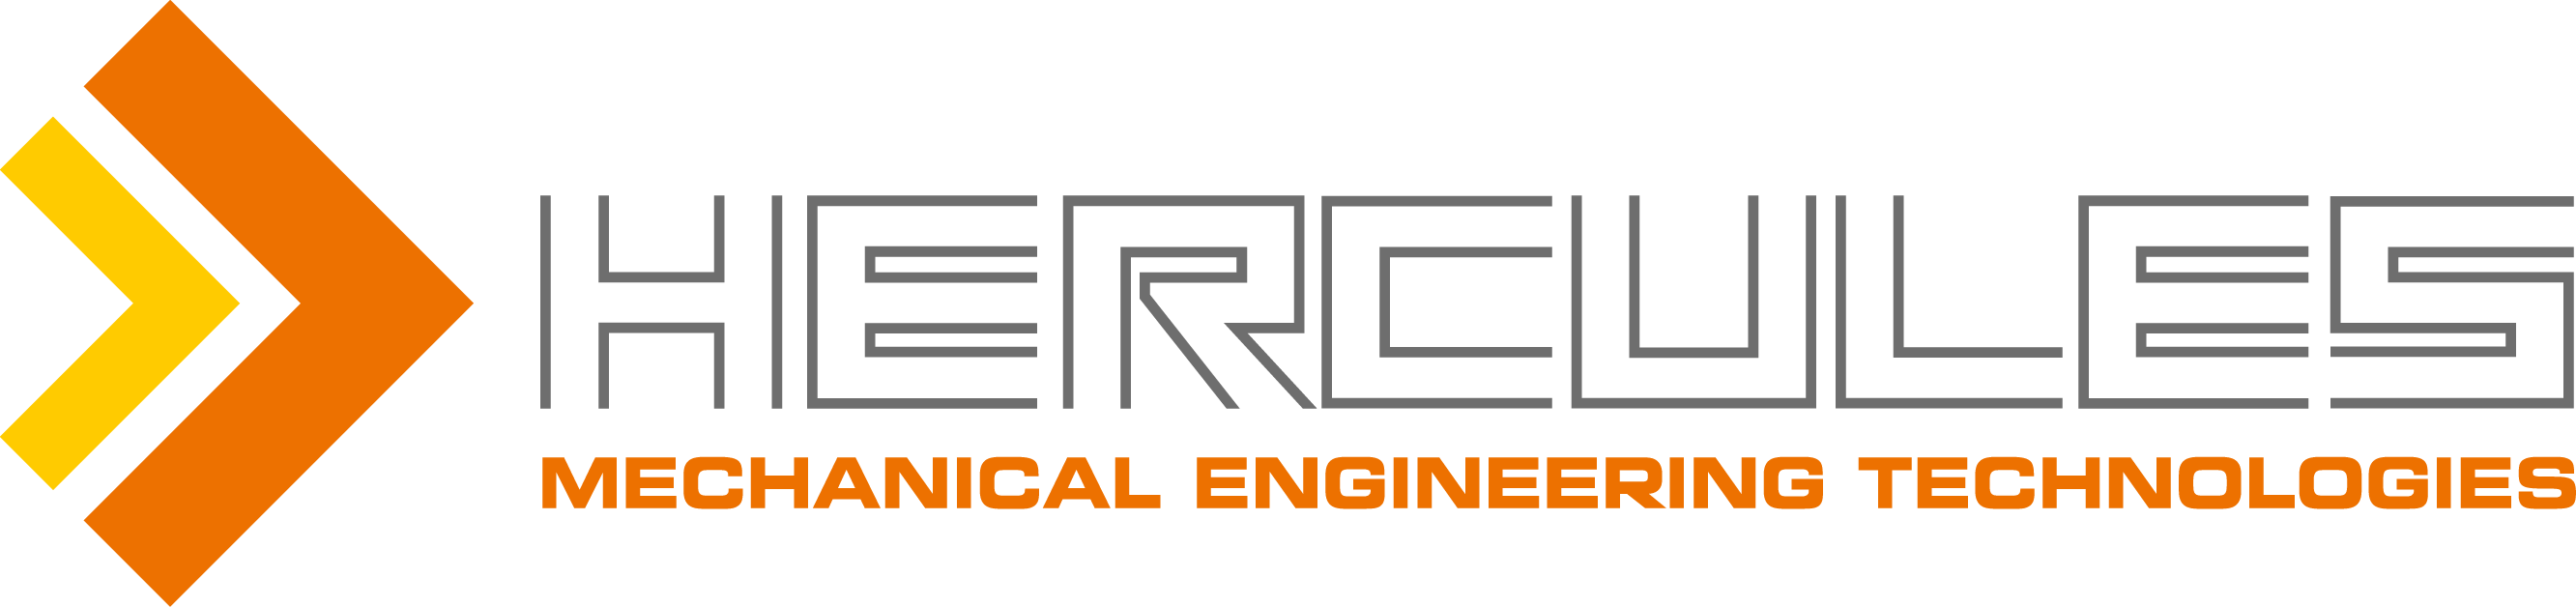 Hercules Mechanical Engineering Technologies